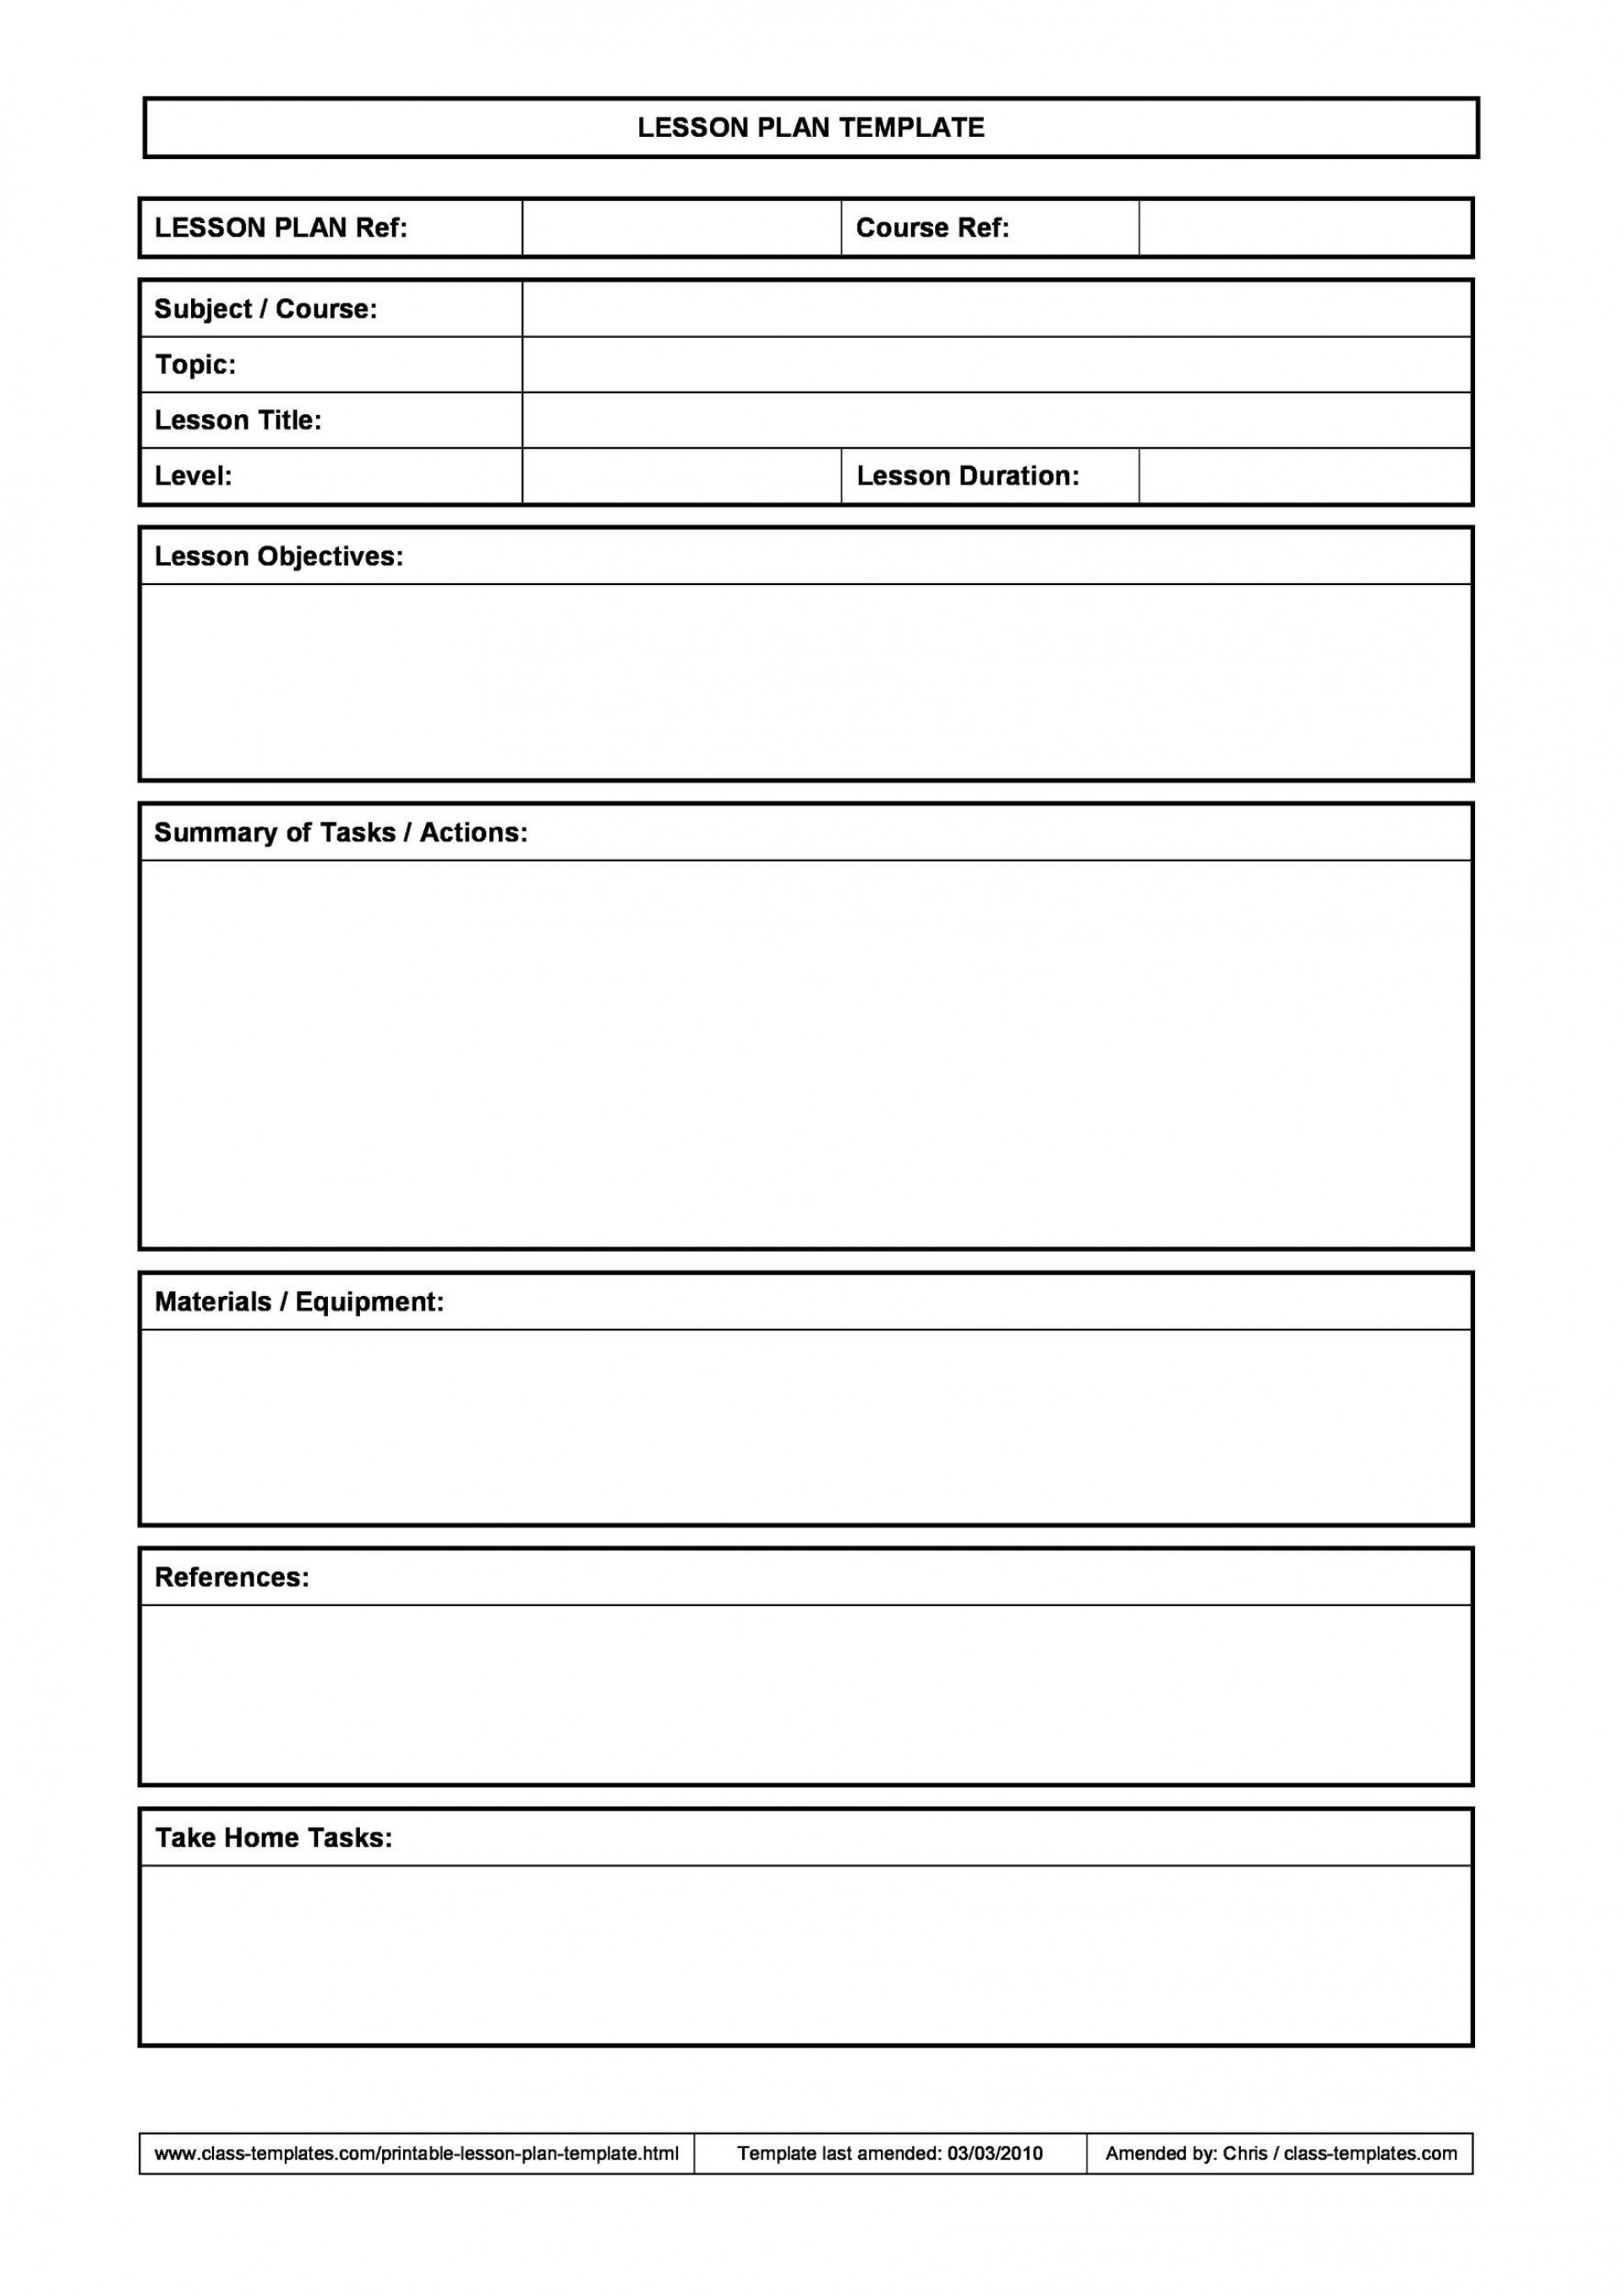 009 Unusual Fillable Lesson Plan Template Free High Def  Printable Editable1920